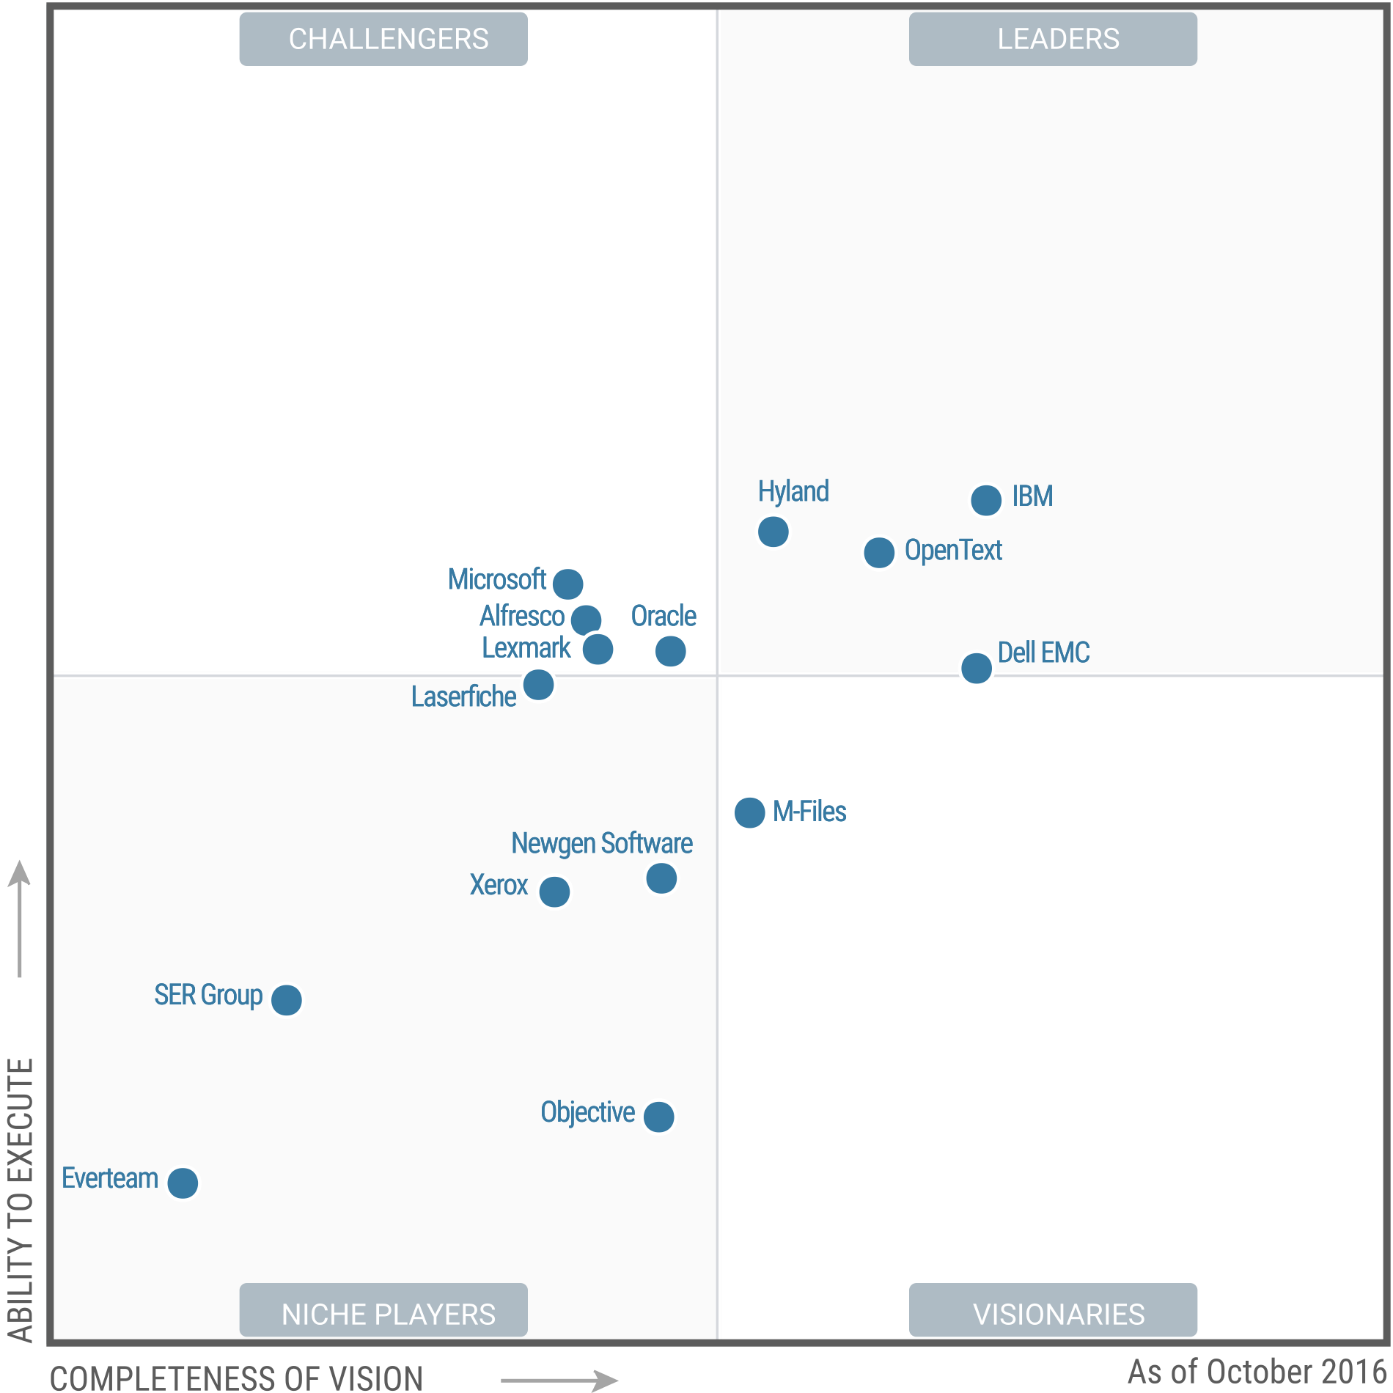 Gartner's Magic Quadrant for ECM & The Market Overview